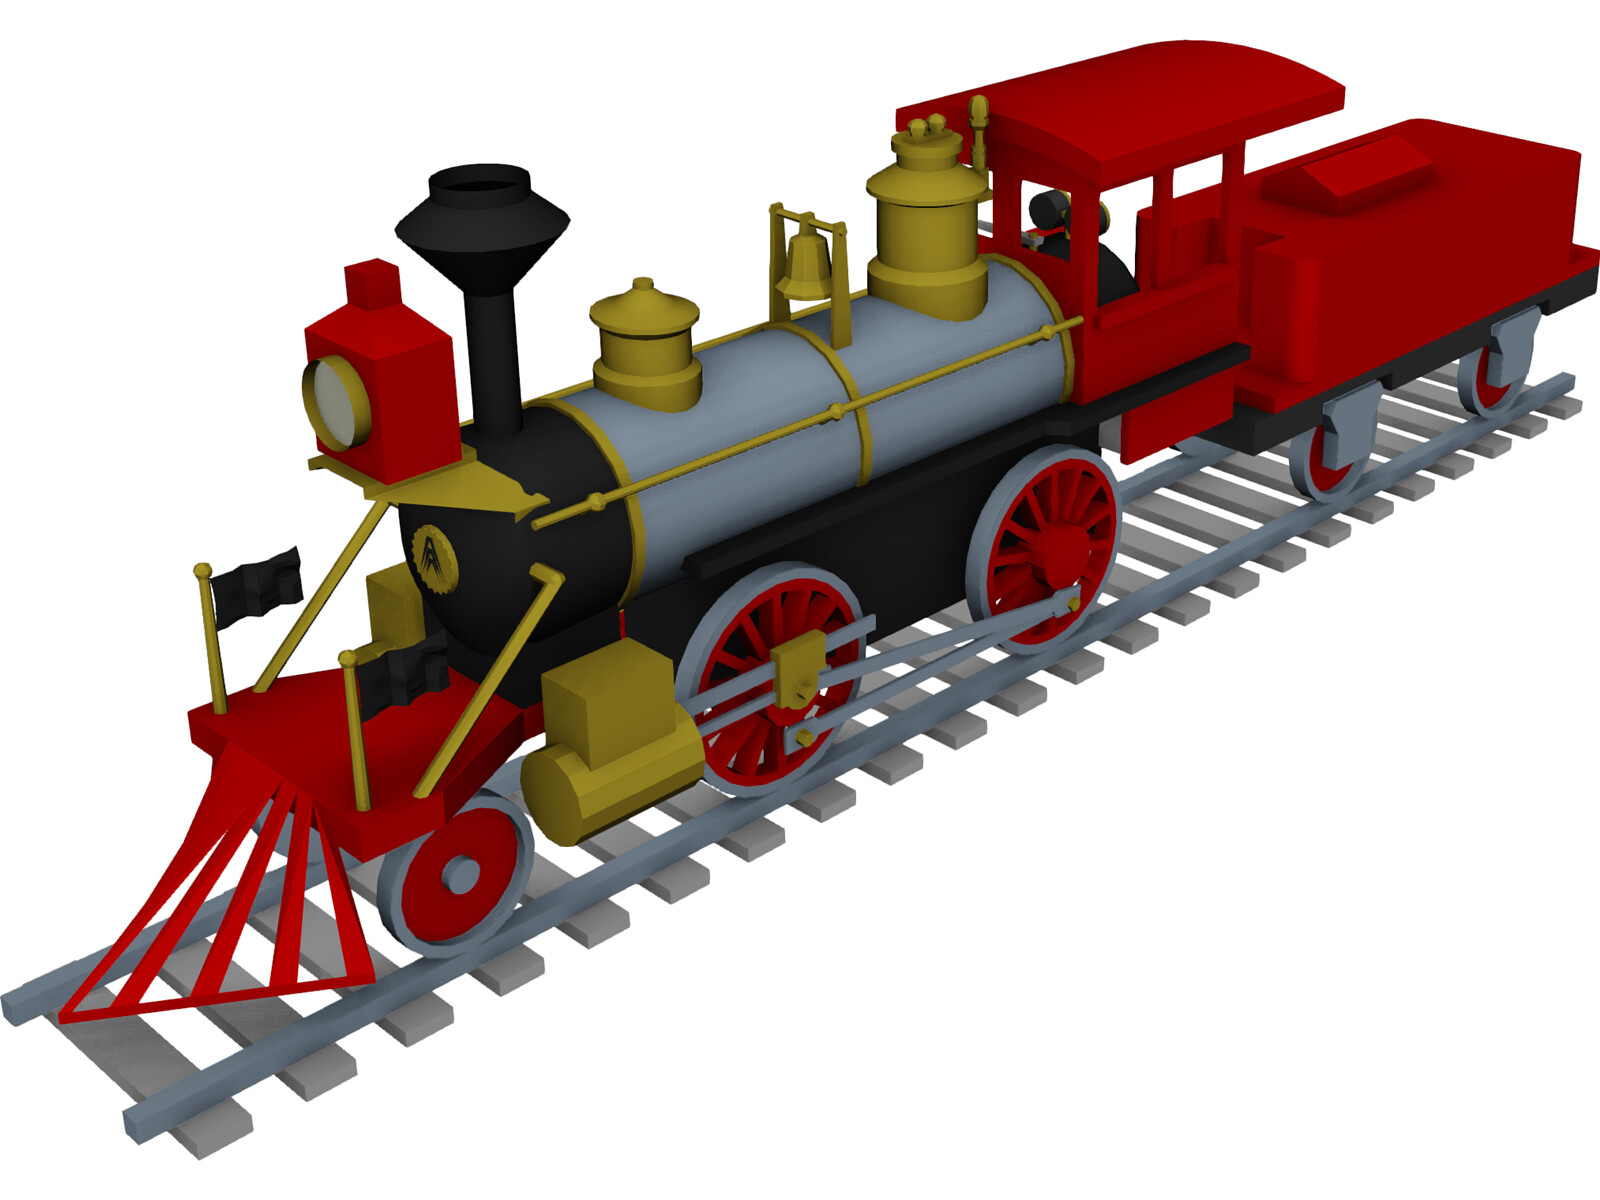 Toy Steam Locomotive with Tender